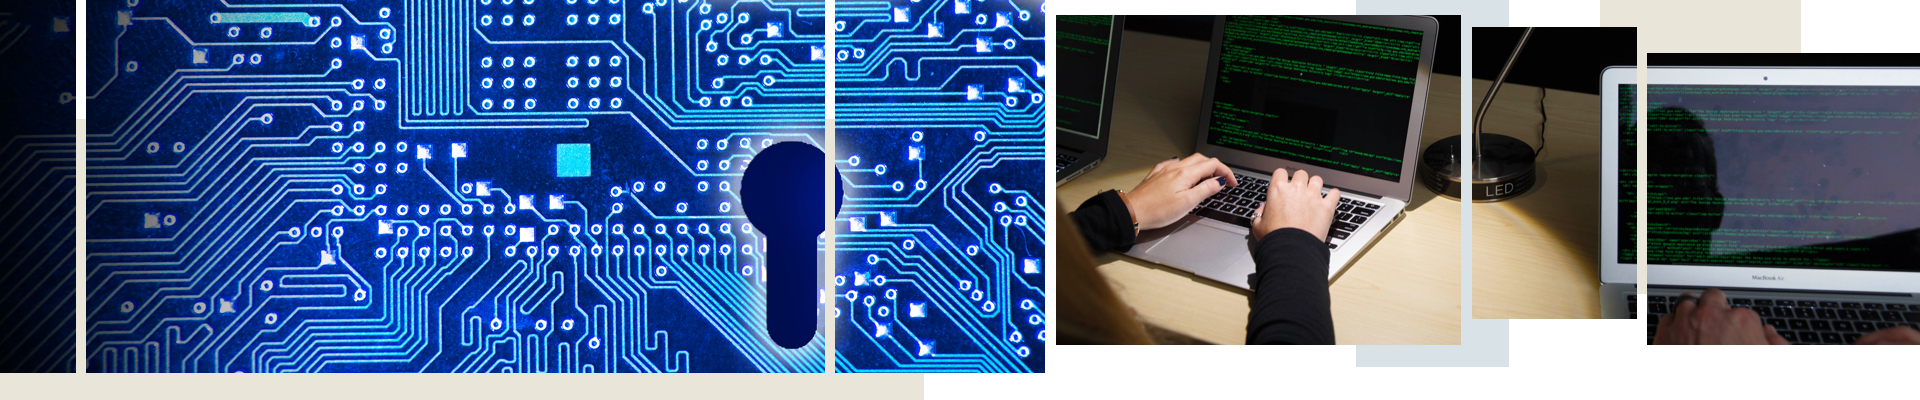 Cybersecurity grid; hands typing on a laptop; reflection on a screen